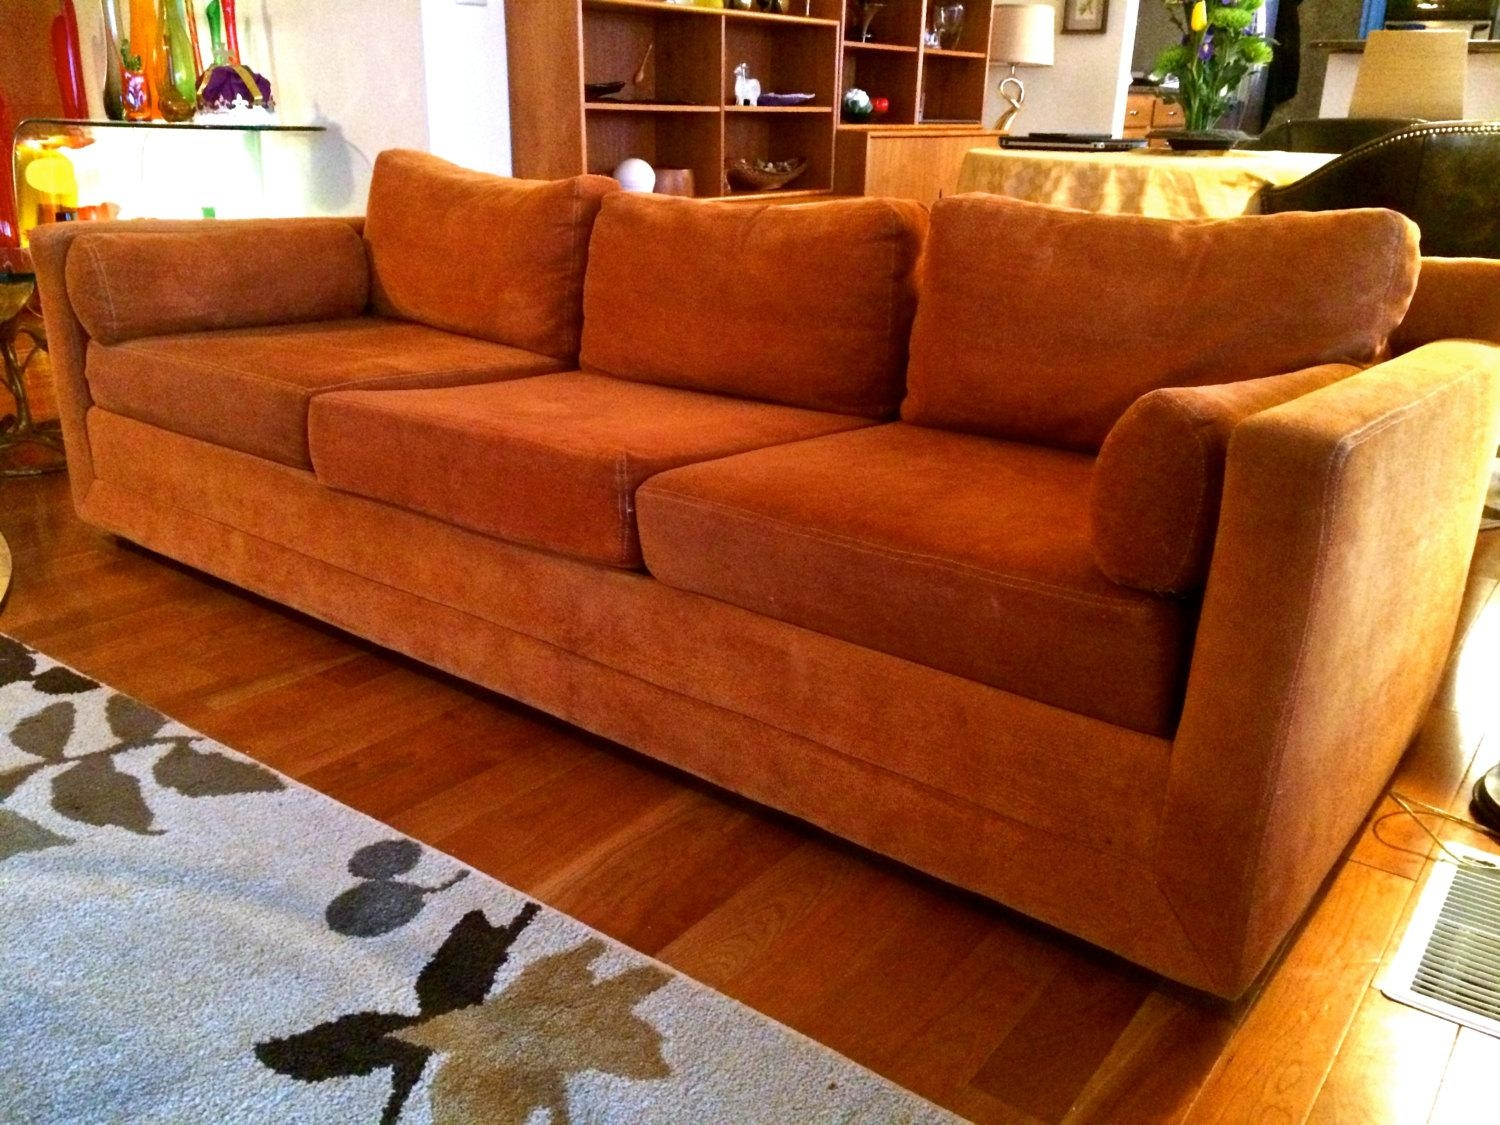 orange color sofa best fabric for toddlers 20 burnt sofas ideas